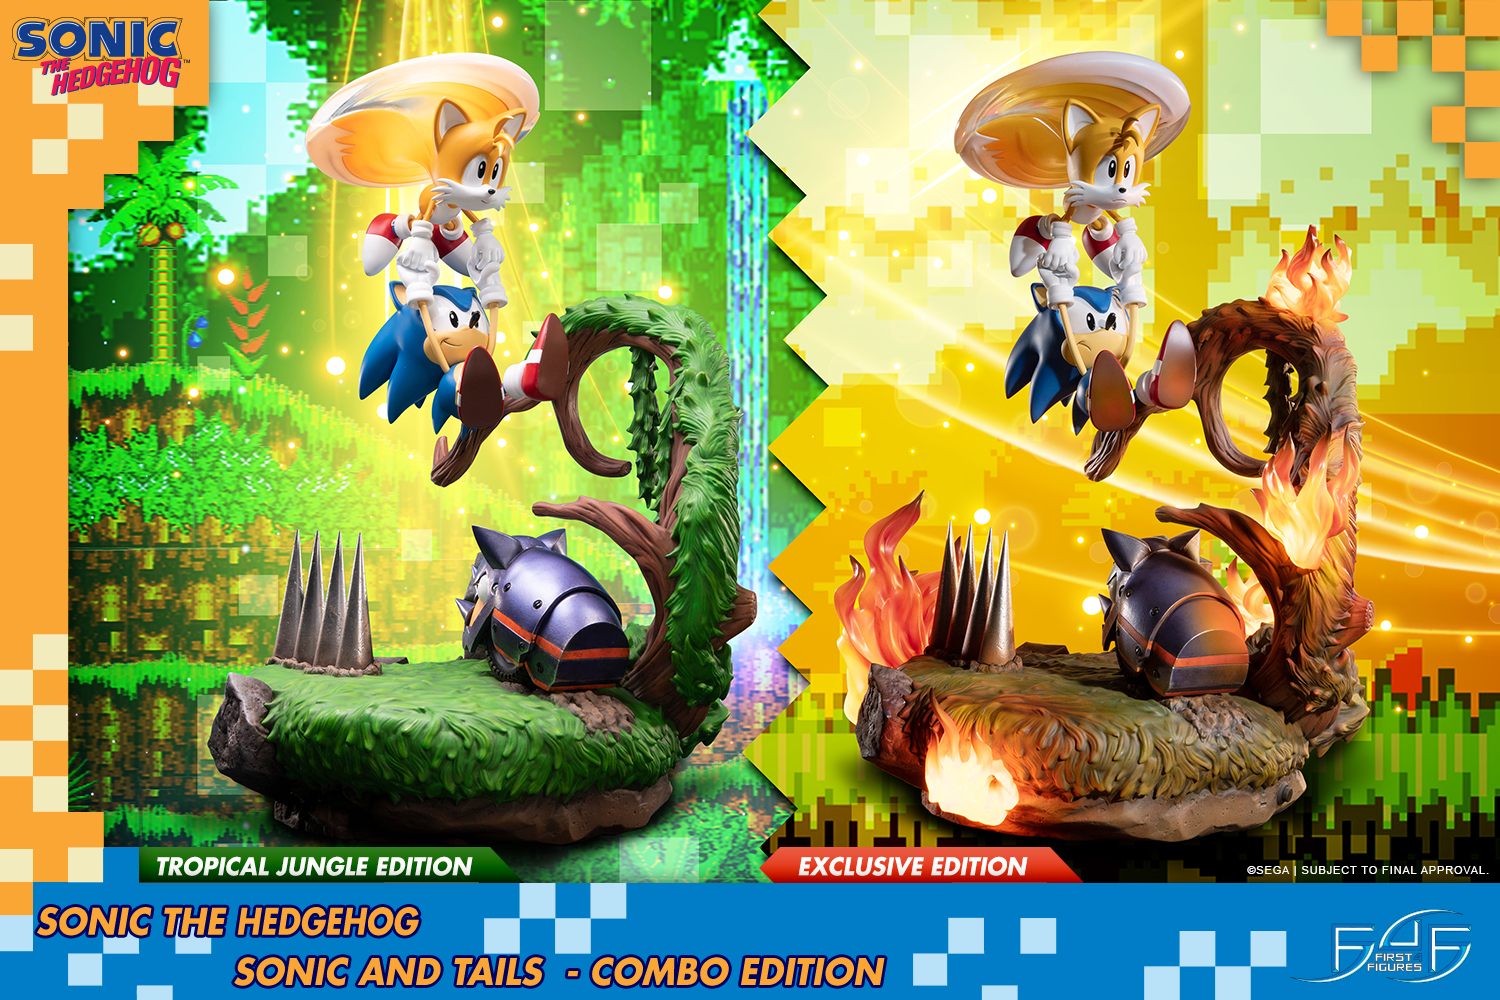 Sonic and Tails (Combo Edition)